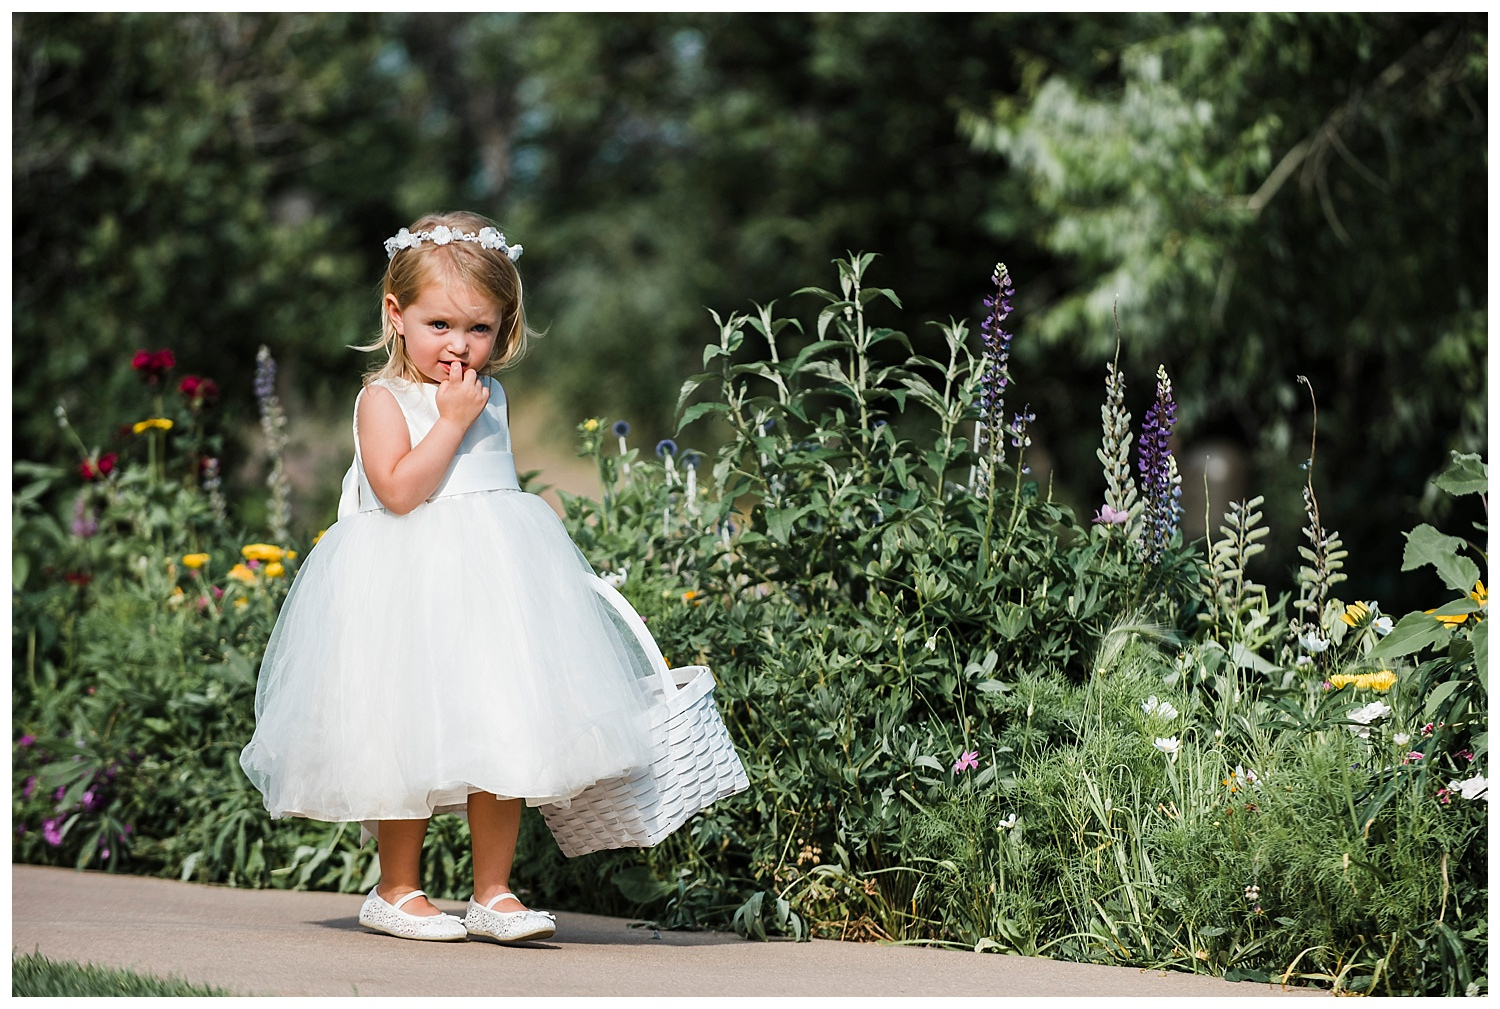 Arrowhead_Golf_Course_Wedding_Littleton_Colorado_Apollo_Fields_155.jpg